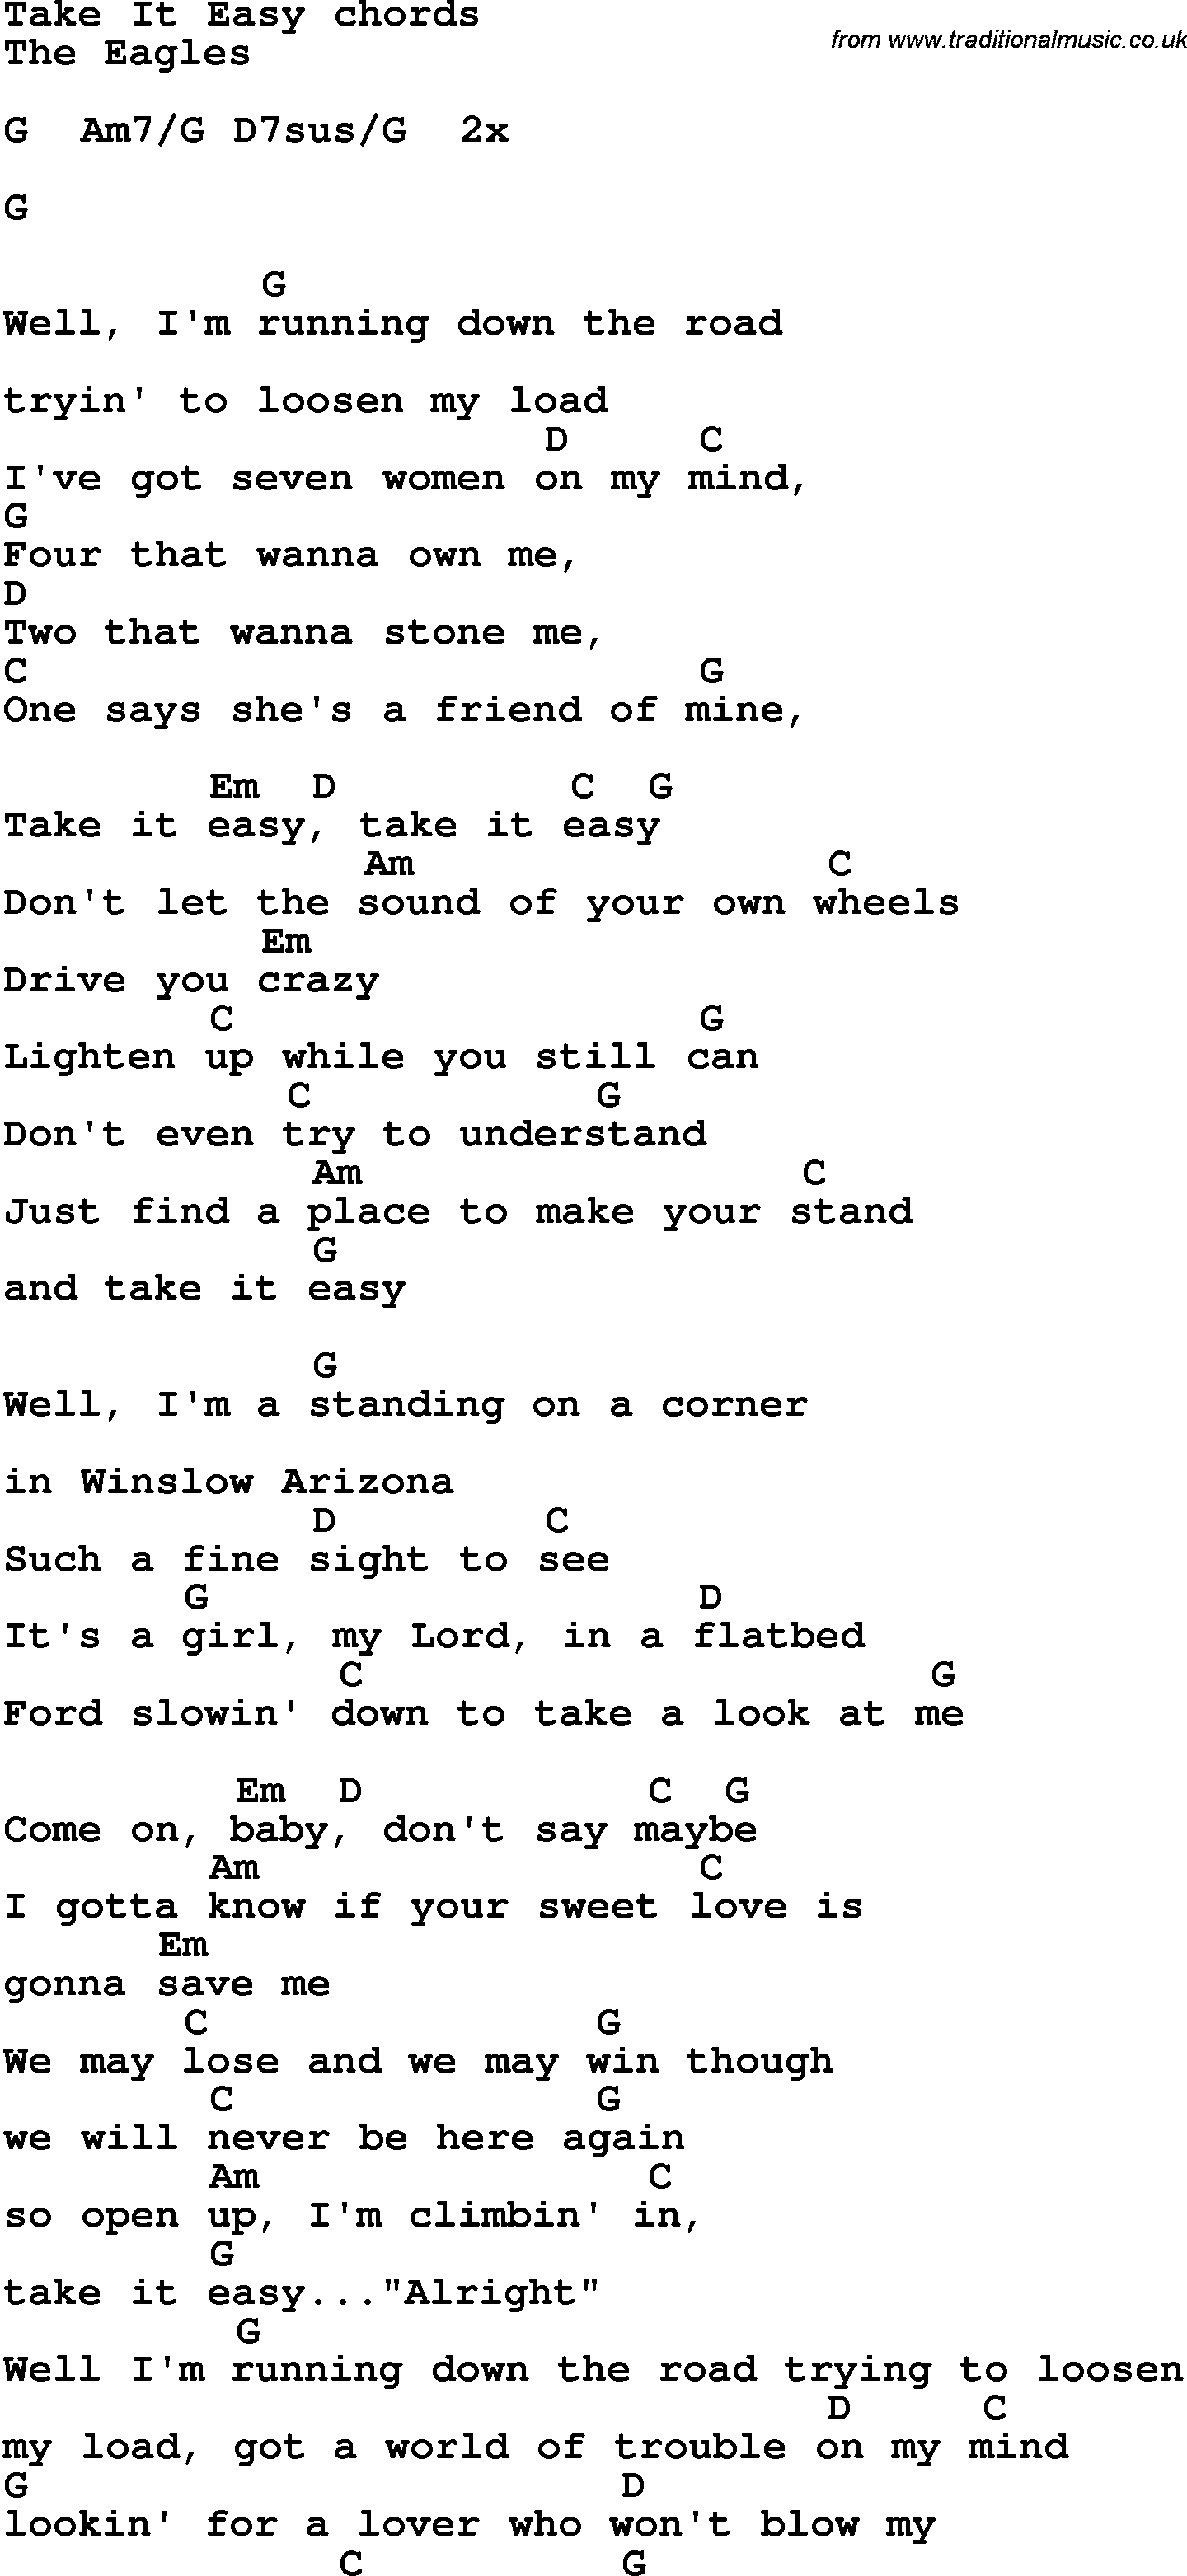 Song Lyrics With Guitar Chords For Take It Easy - The Eagles - Free Printable Song Lyrics With Guitar Chords